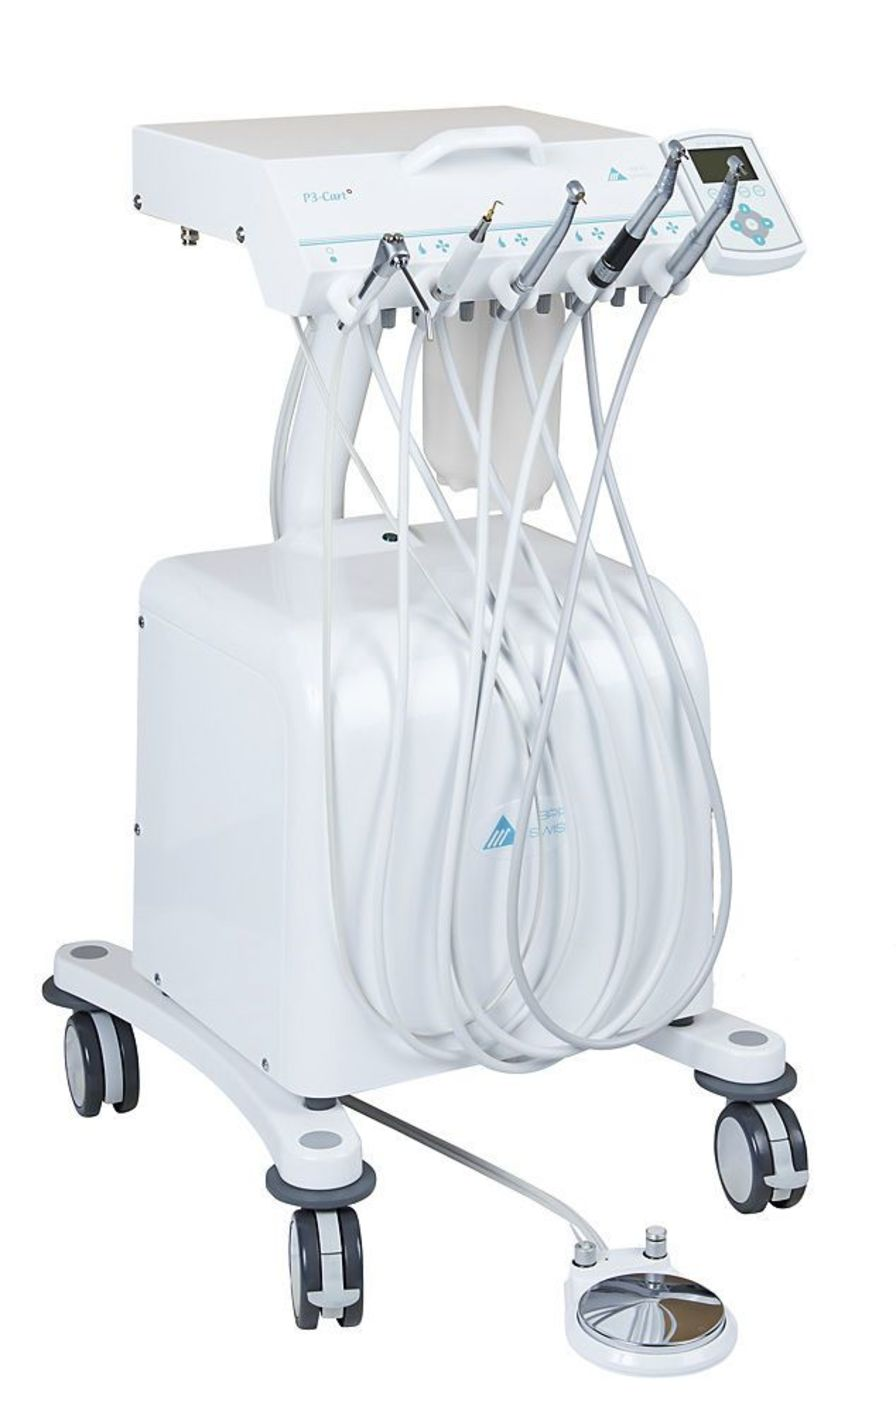 Mobile dental delivery system P3-CART BPR Swiss